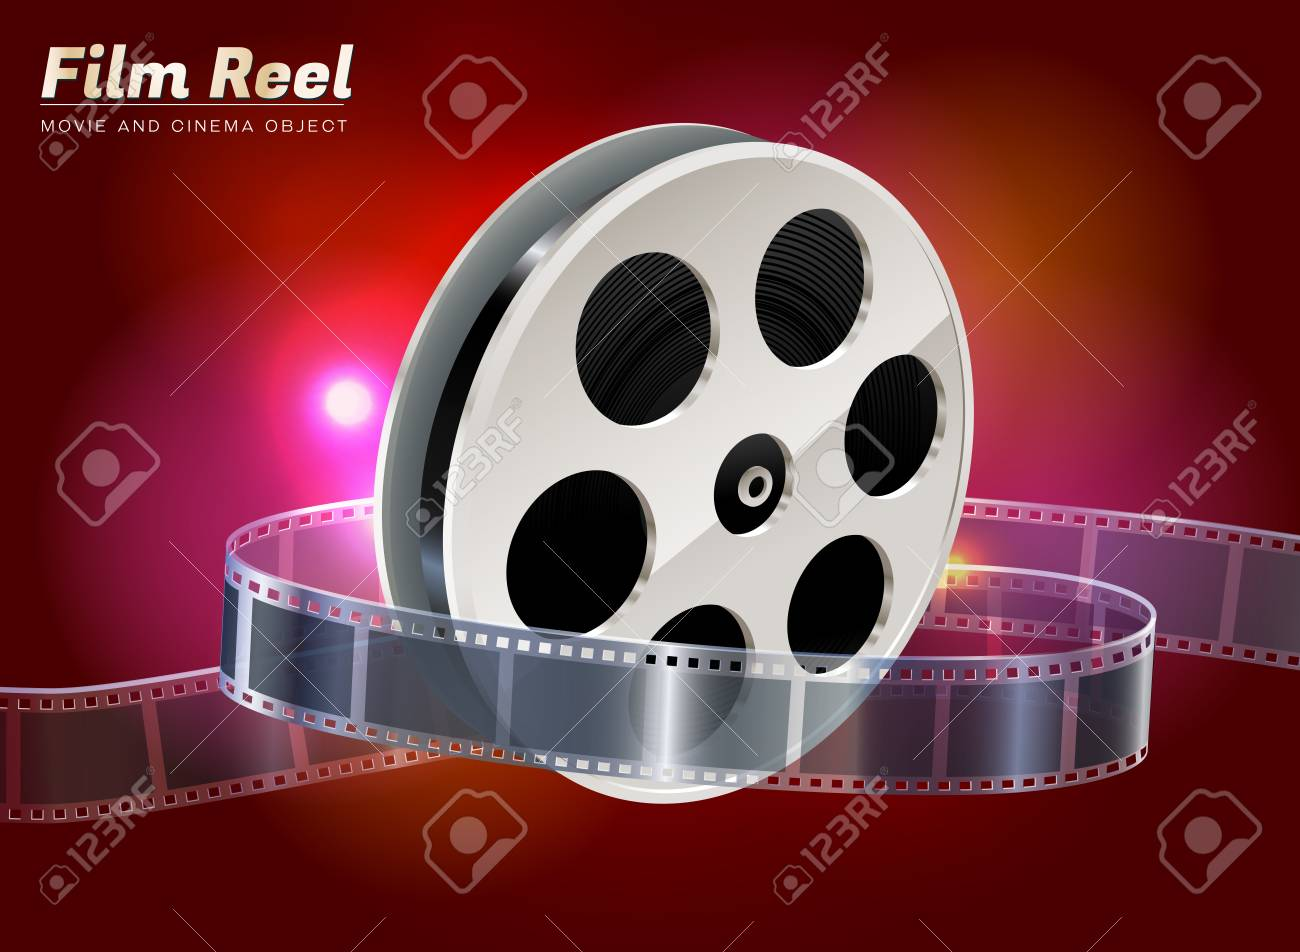 Film Reel Cinema Movie Theater Object On Bokeh Background Royalty